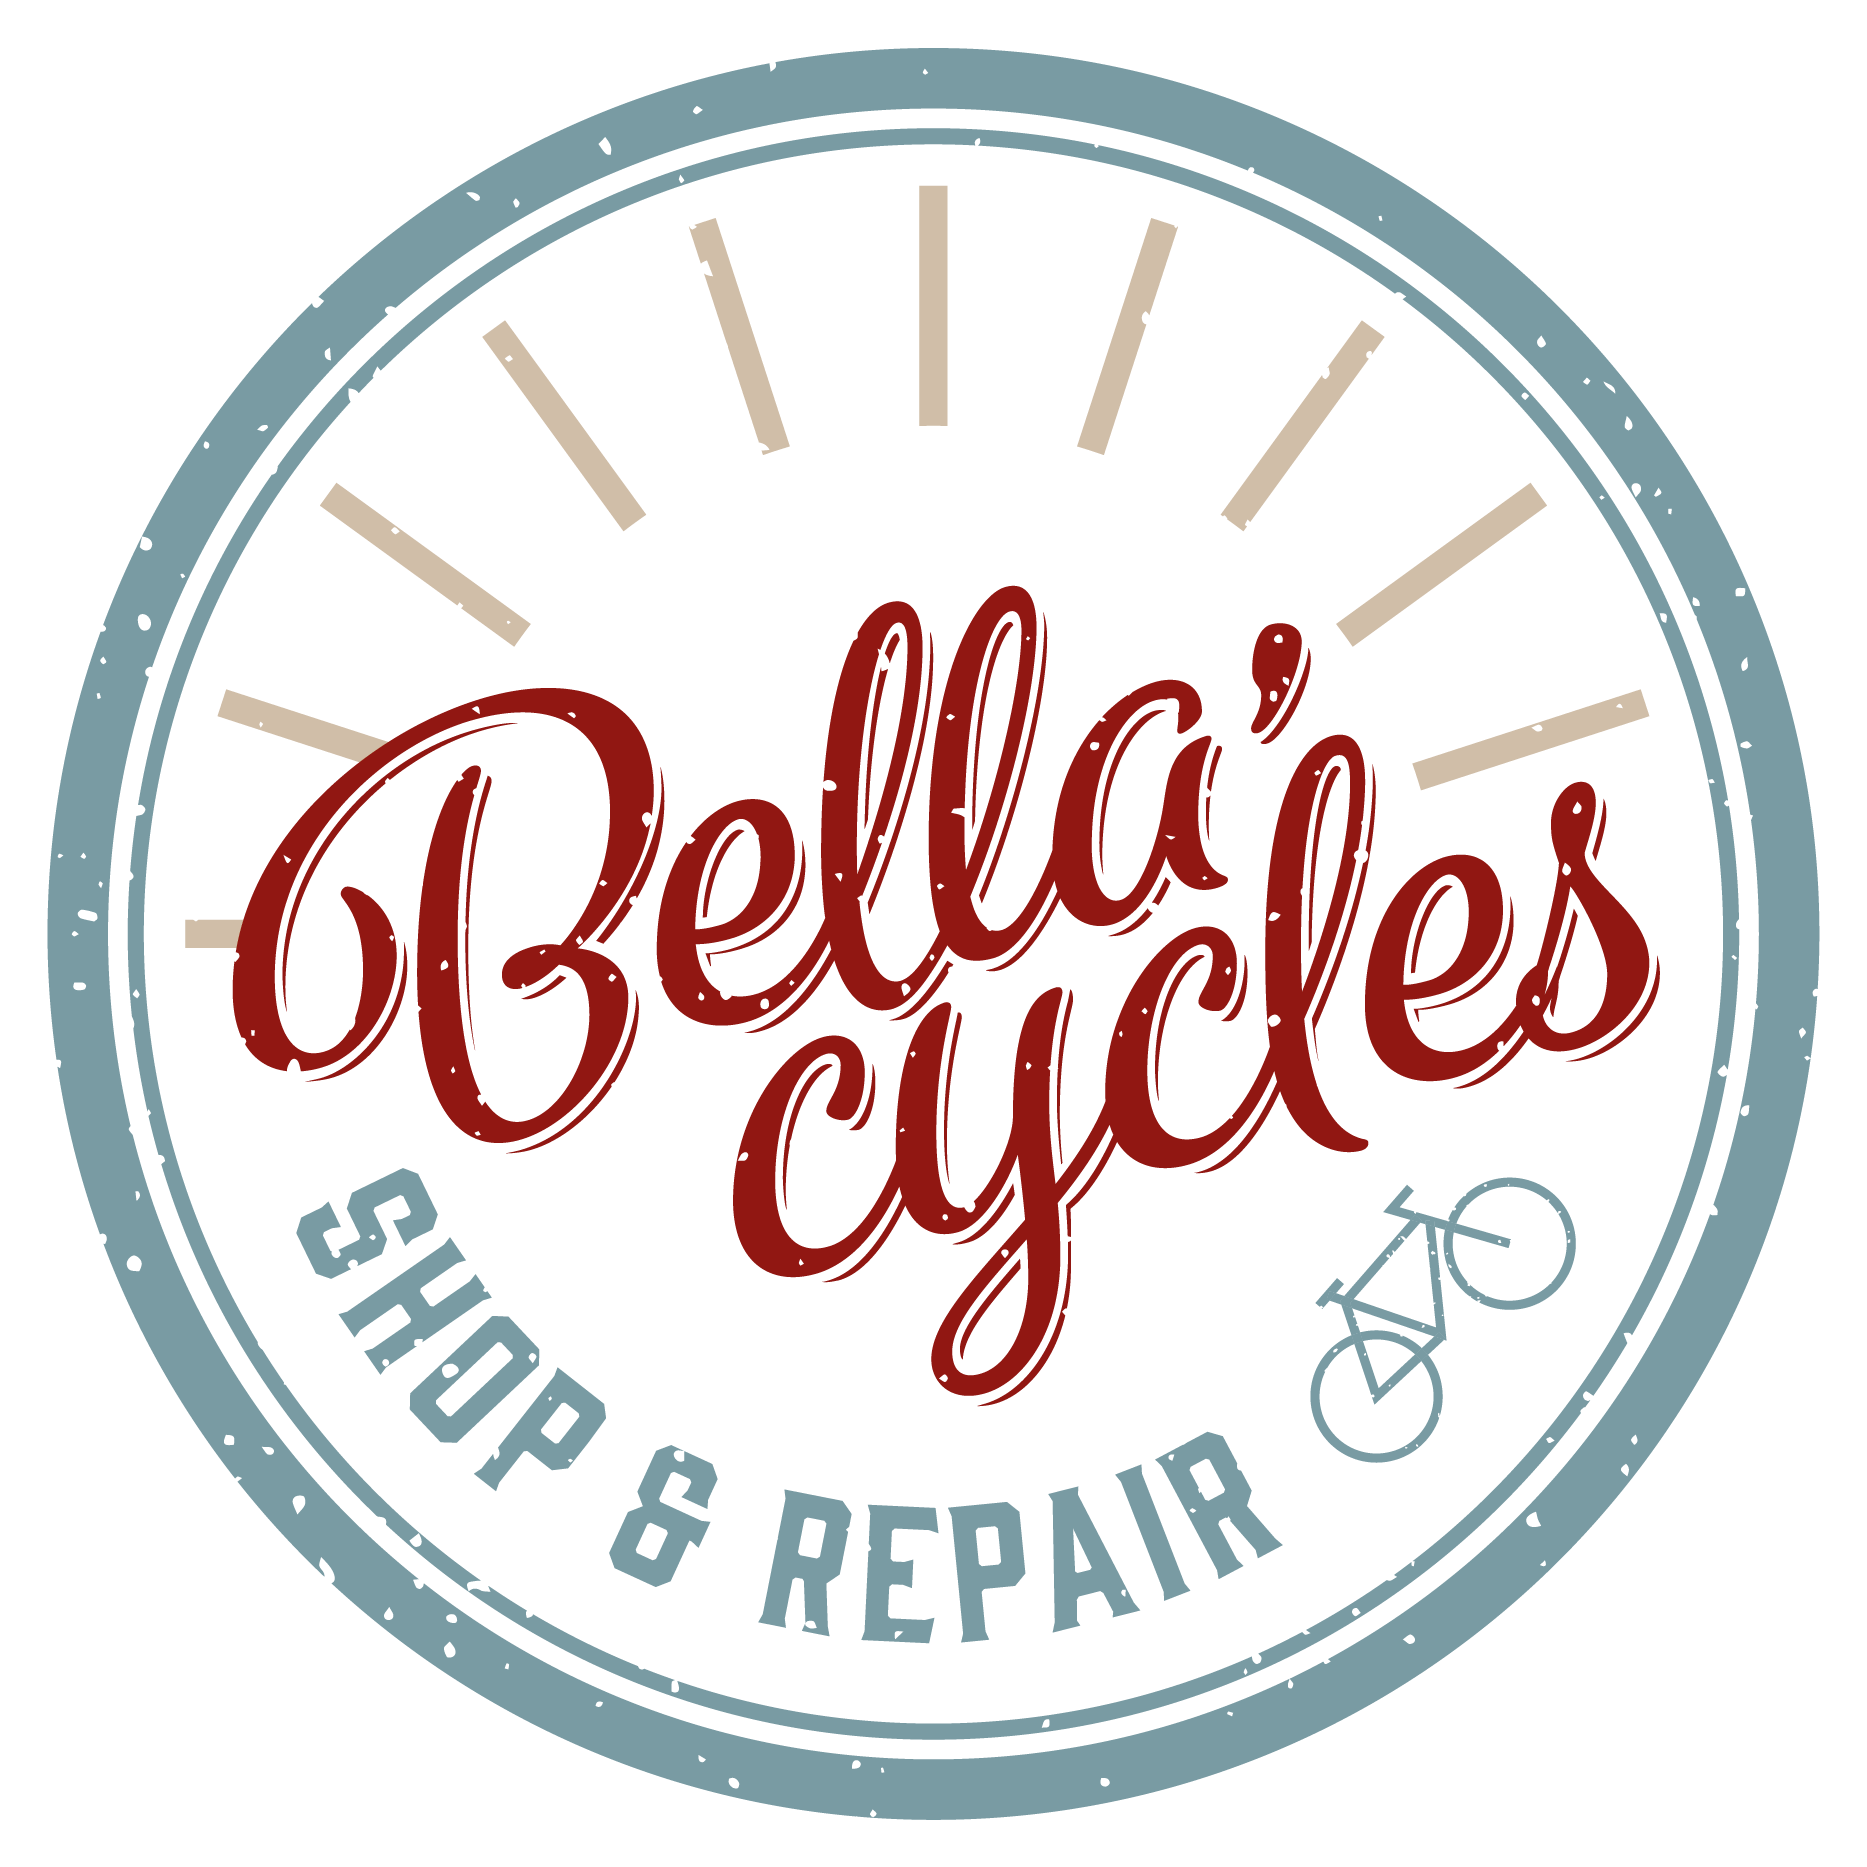 r38747_44_bellacycle-logo_cmjn-01.png